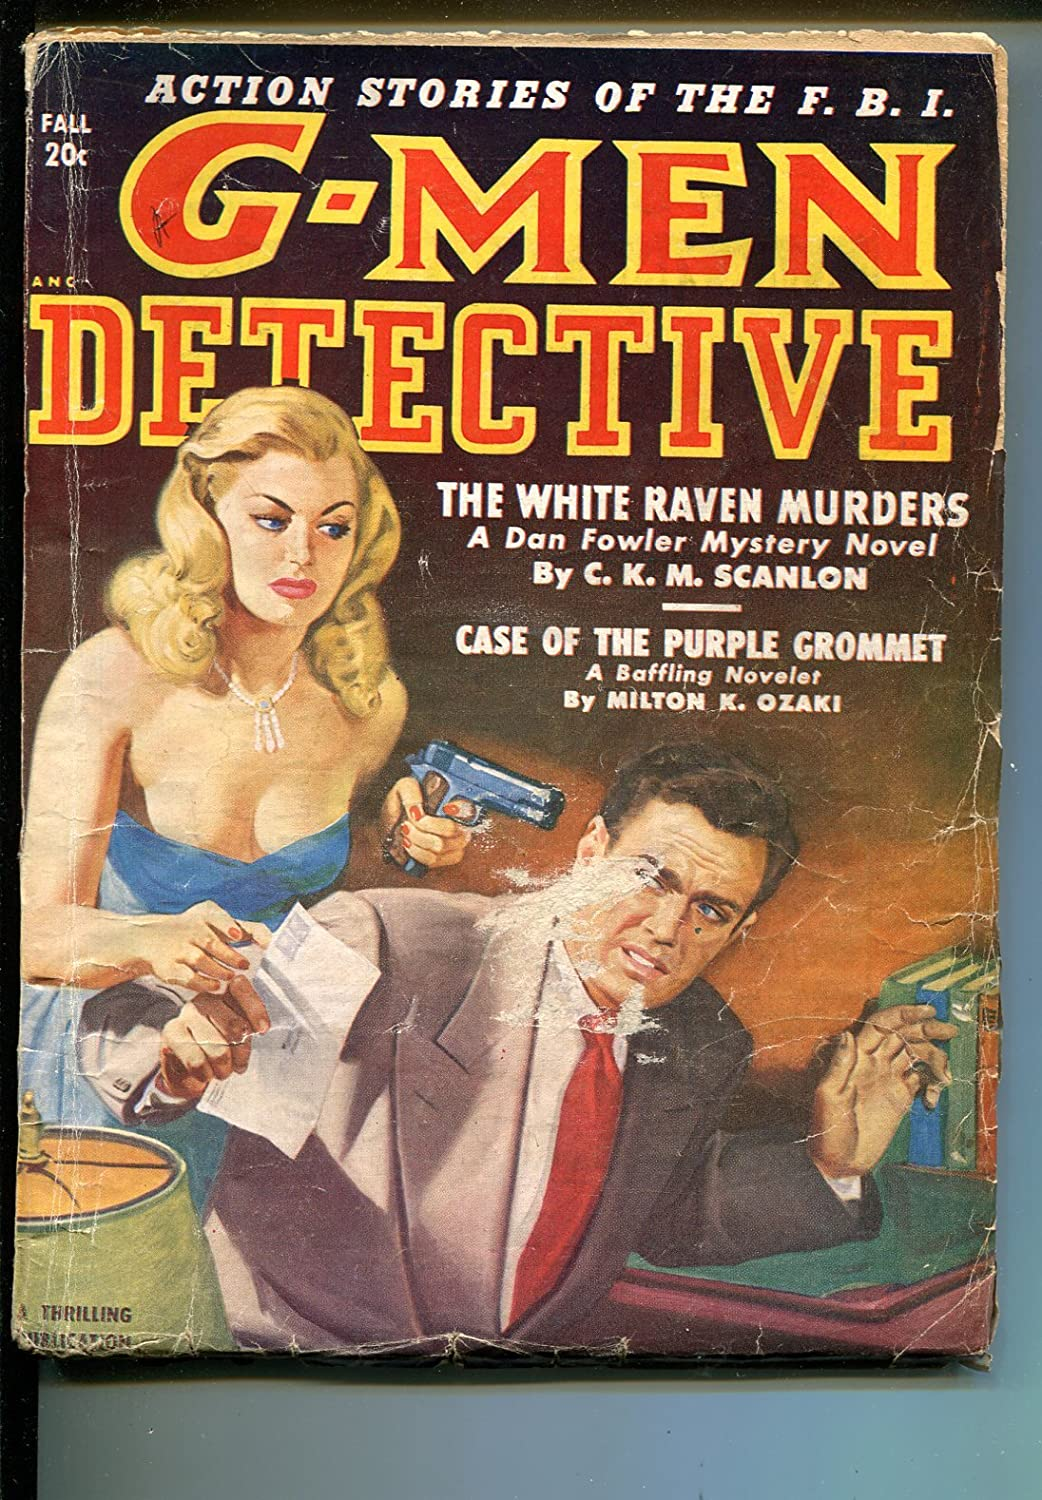 G-Men Detective Fall 1950-Thrilling-gun Max 79% OFF cover-Louis L'Amour moll Max 75% OFF